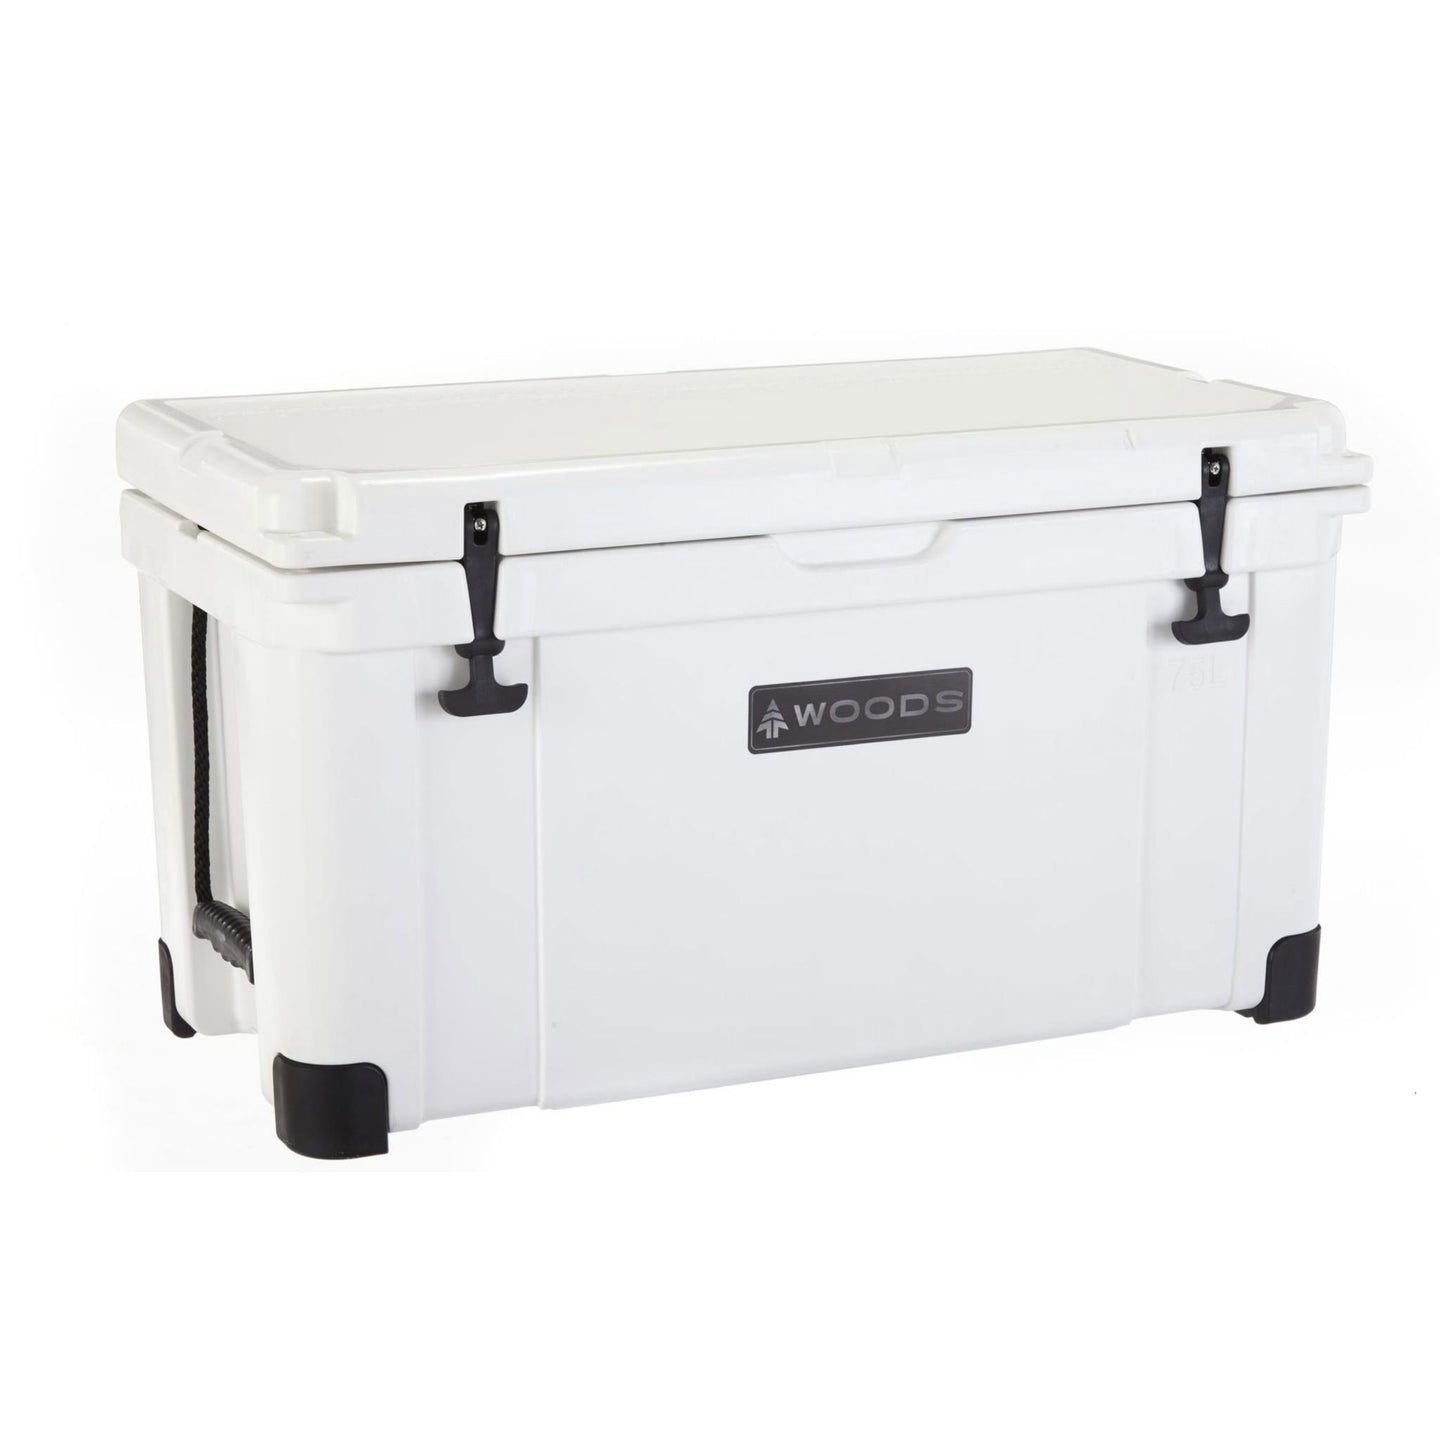 Woods Arctic White Super King Cooler 75 Quart Roto-Molded